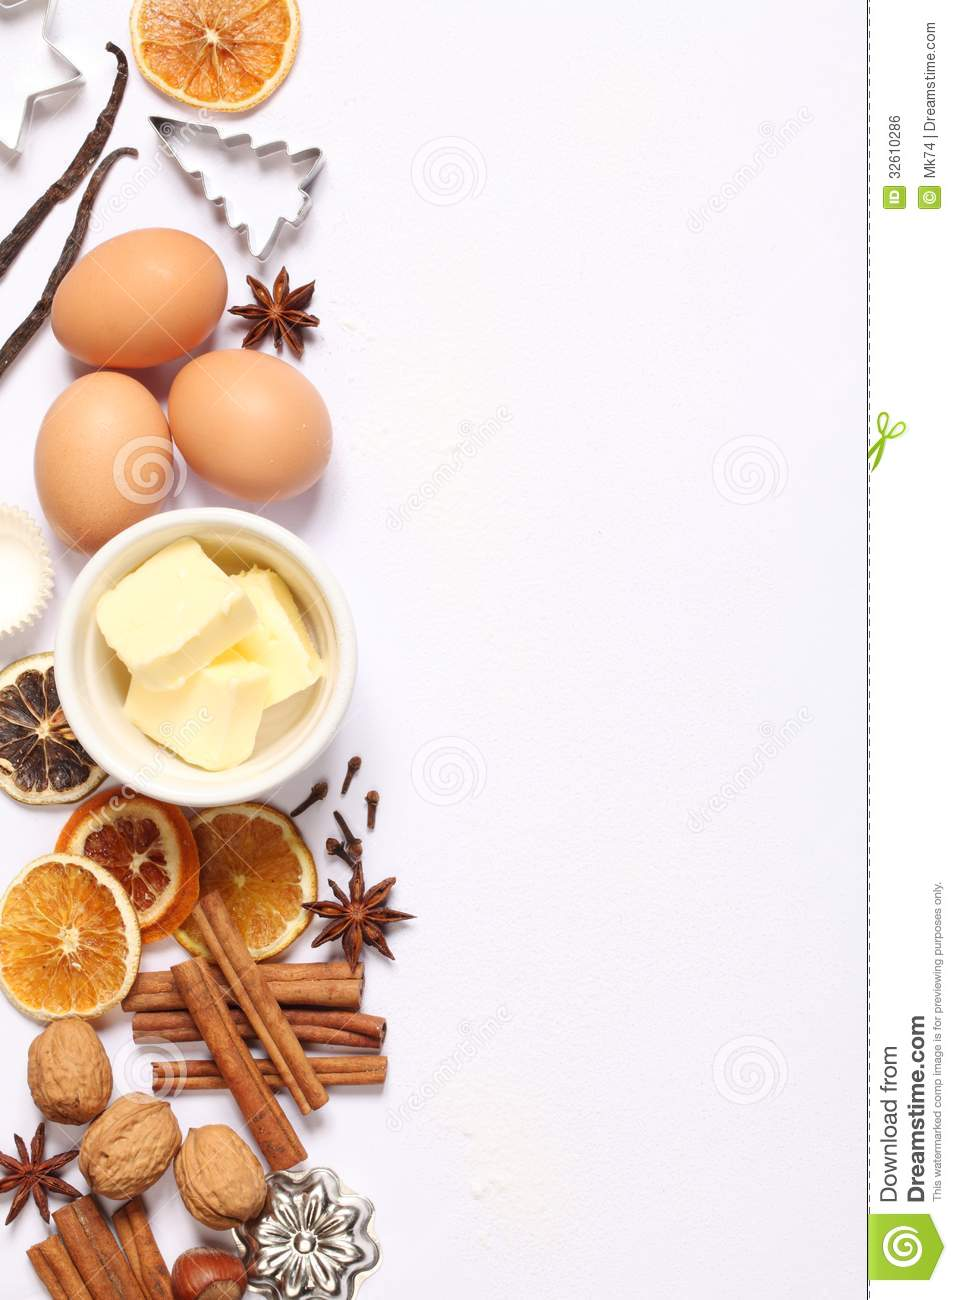 Baking Background Stock Photo Image Of Butter Cutter